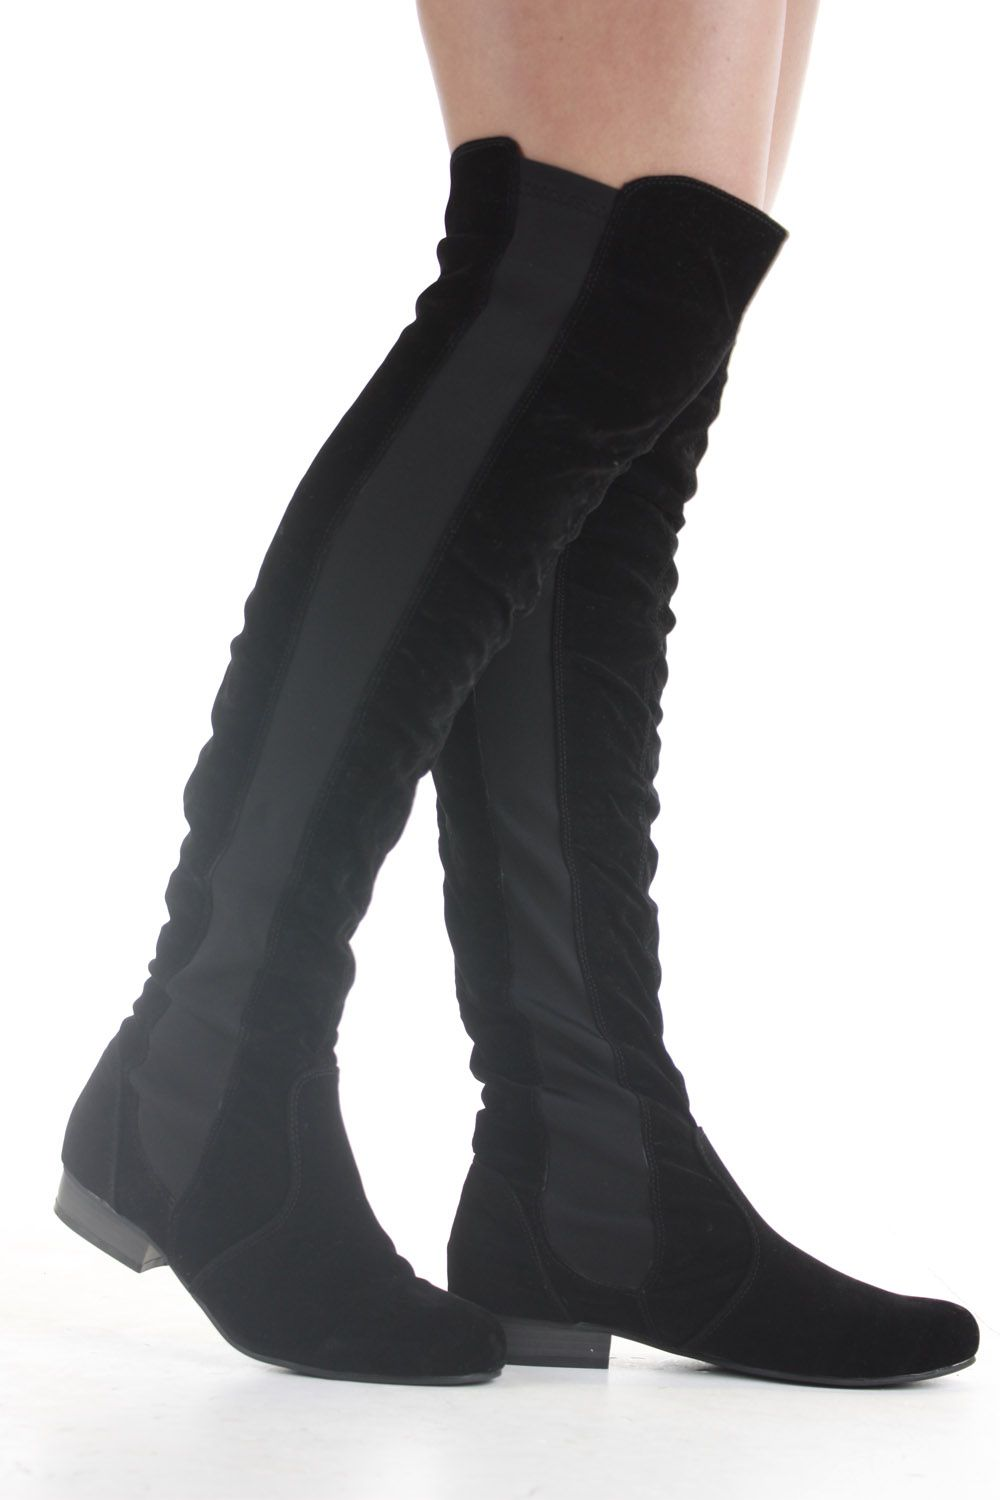 WOMENS WIDE MID CALF ZIP UP LOW HEELS FLATS STRETCH FIT WINTER BUCKLE SIZE BOOTS